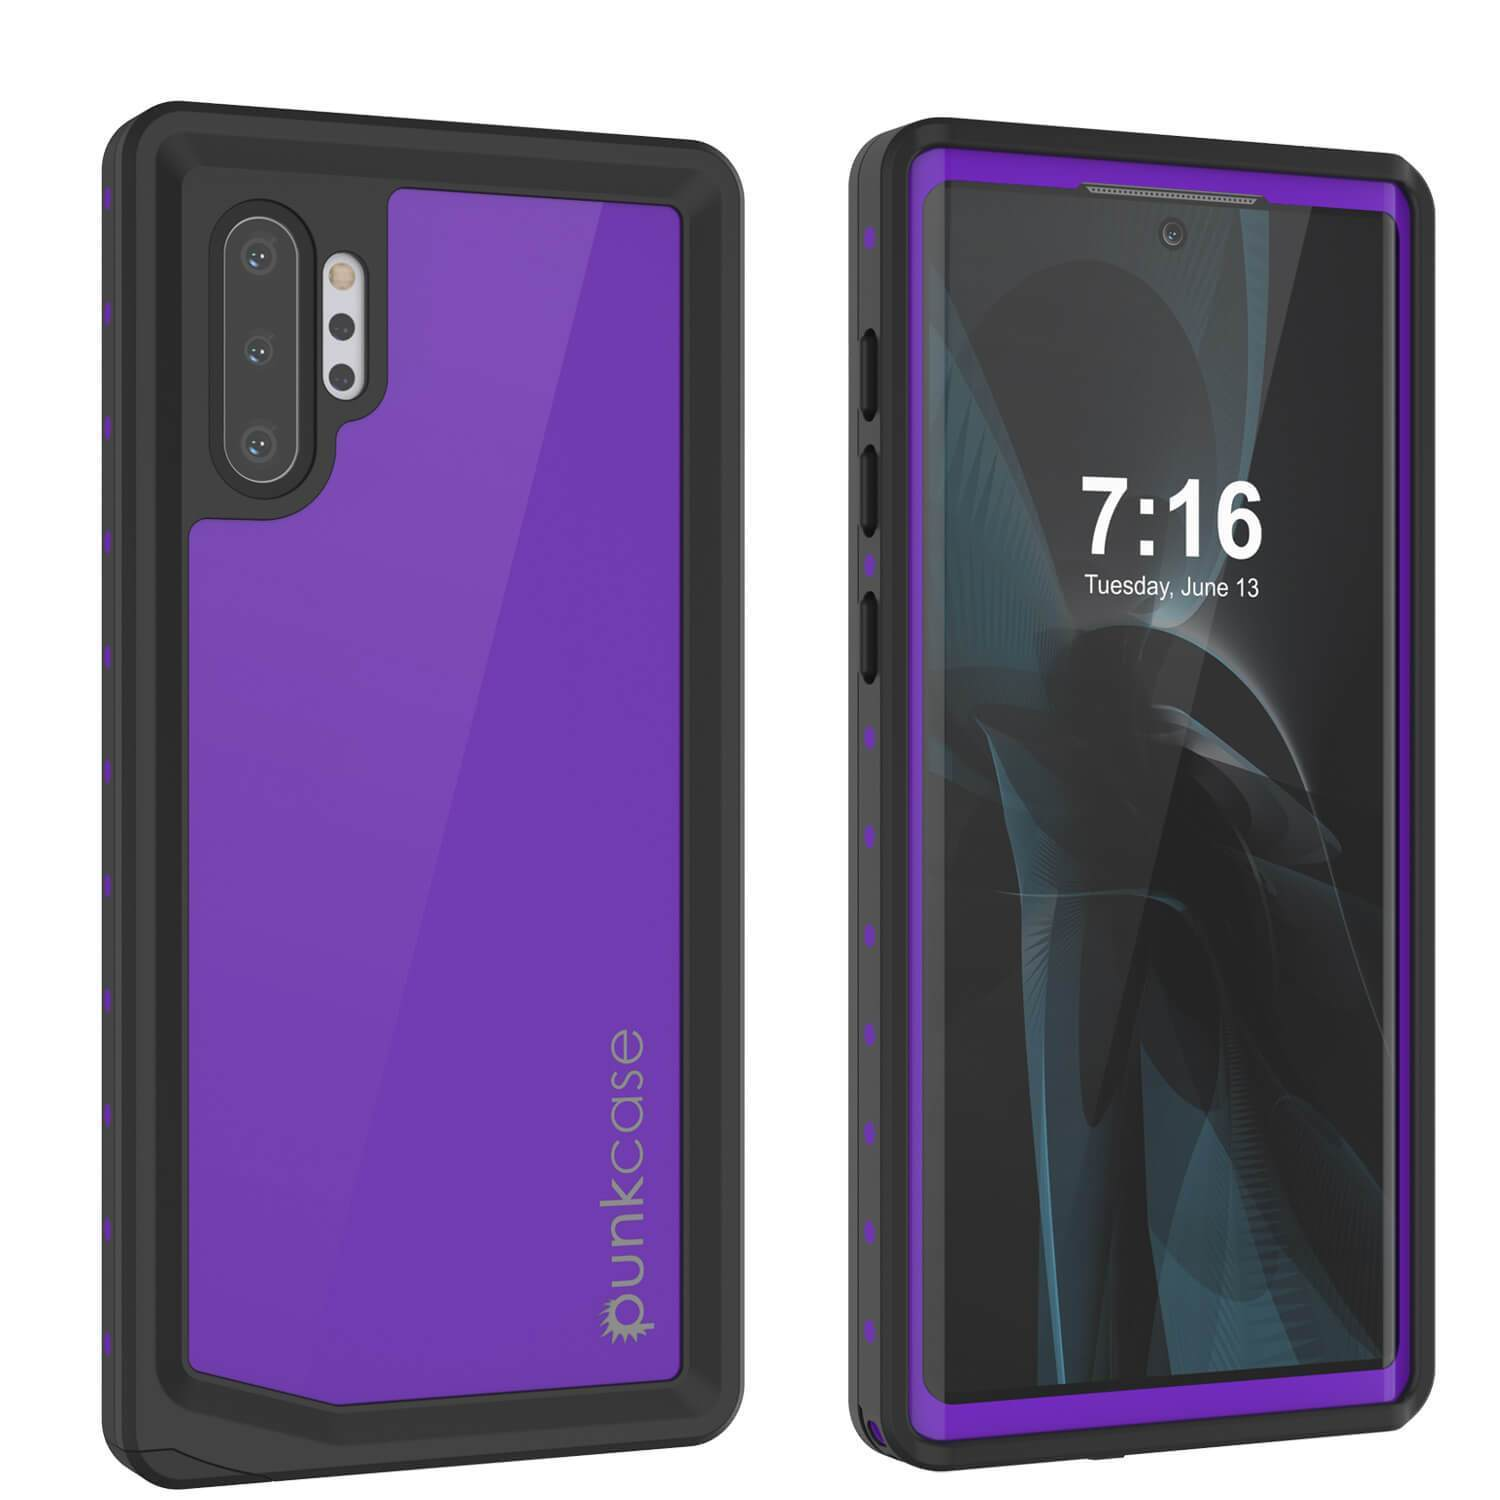 Galaxy Note 10+ Plus Waterproof Case, Punkcase Studstar Purple Series Thin Armor Cover